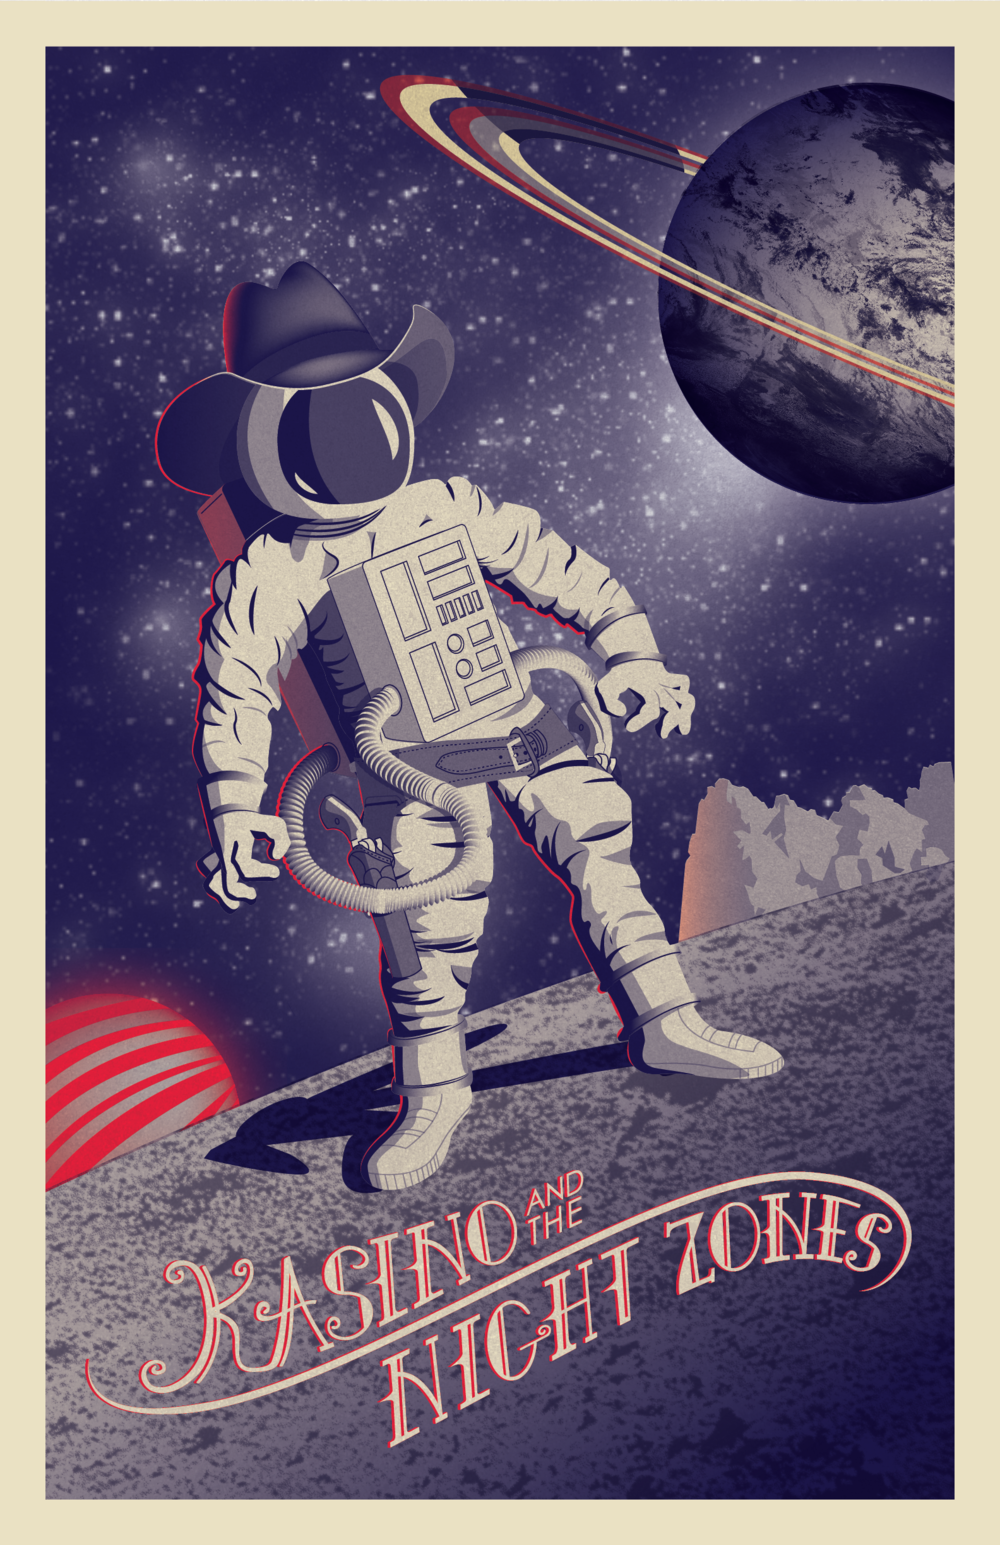 kasino-night-zones-gig-poster-kansas-city-kyle-dolan-graphic-design-illustration.png